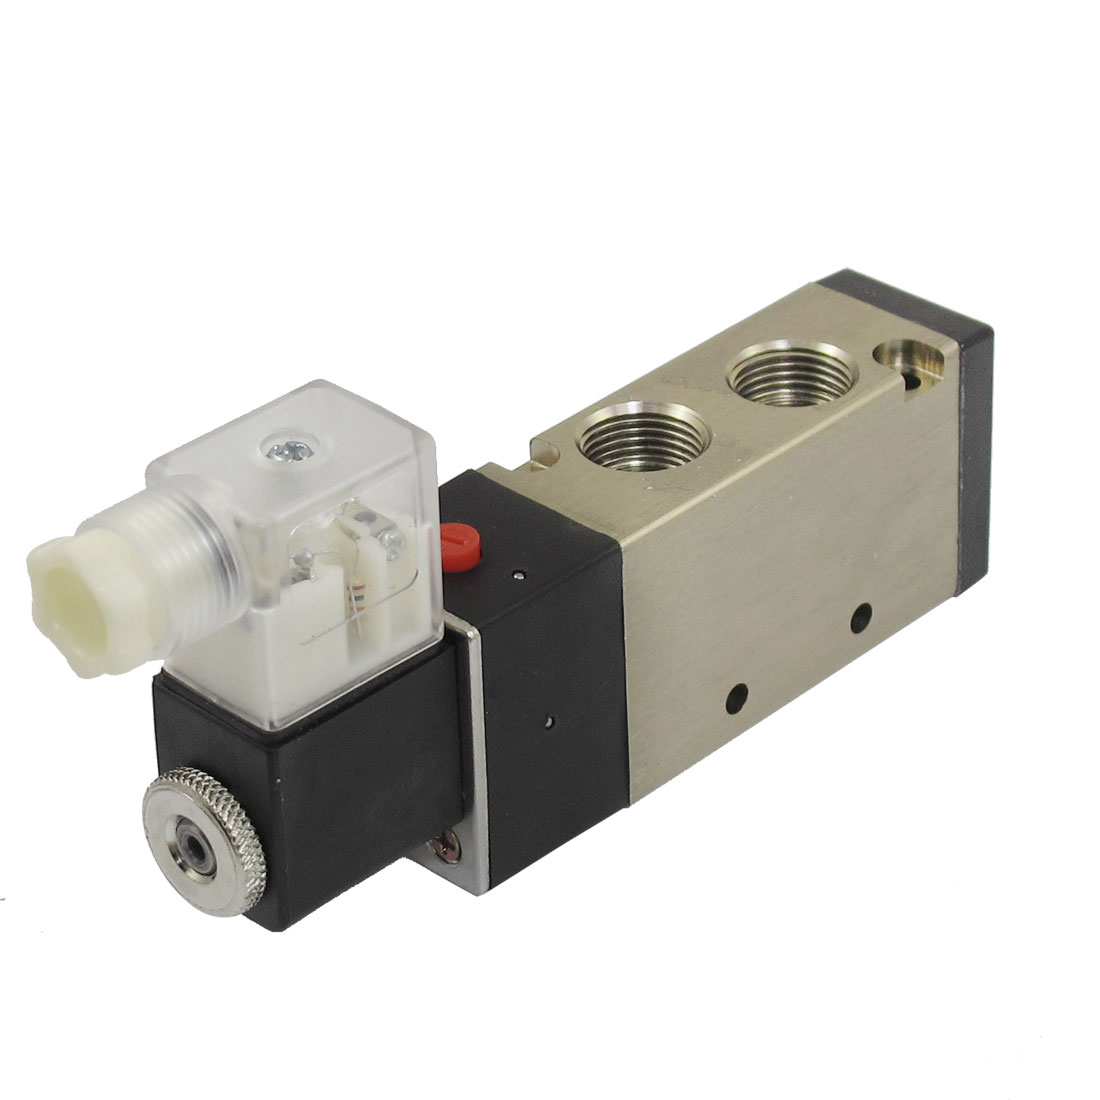 "DC 12V 3W 250mA 2 Position 5 Way Pneumatic Electromagnetic Solenoid Valve G1/4"" Exhaust"